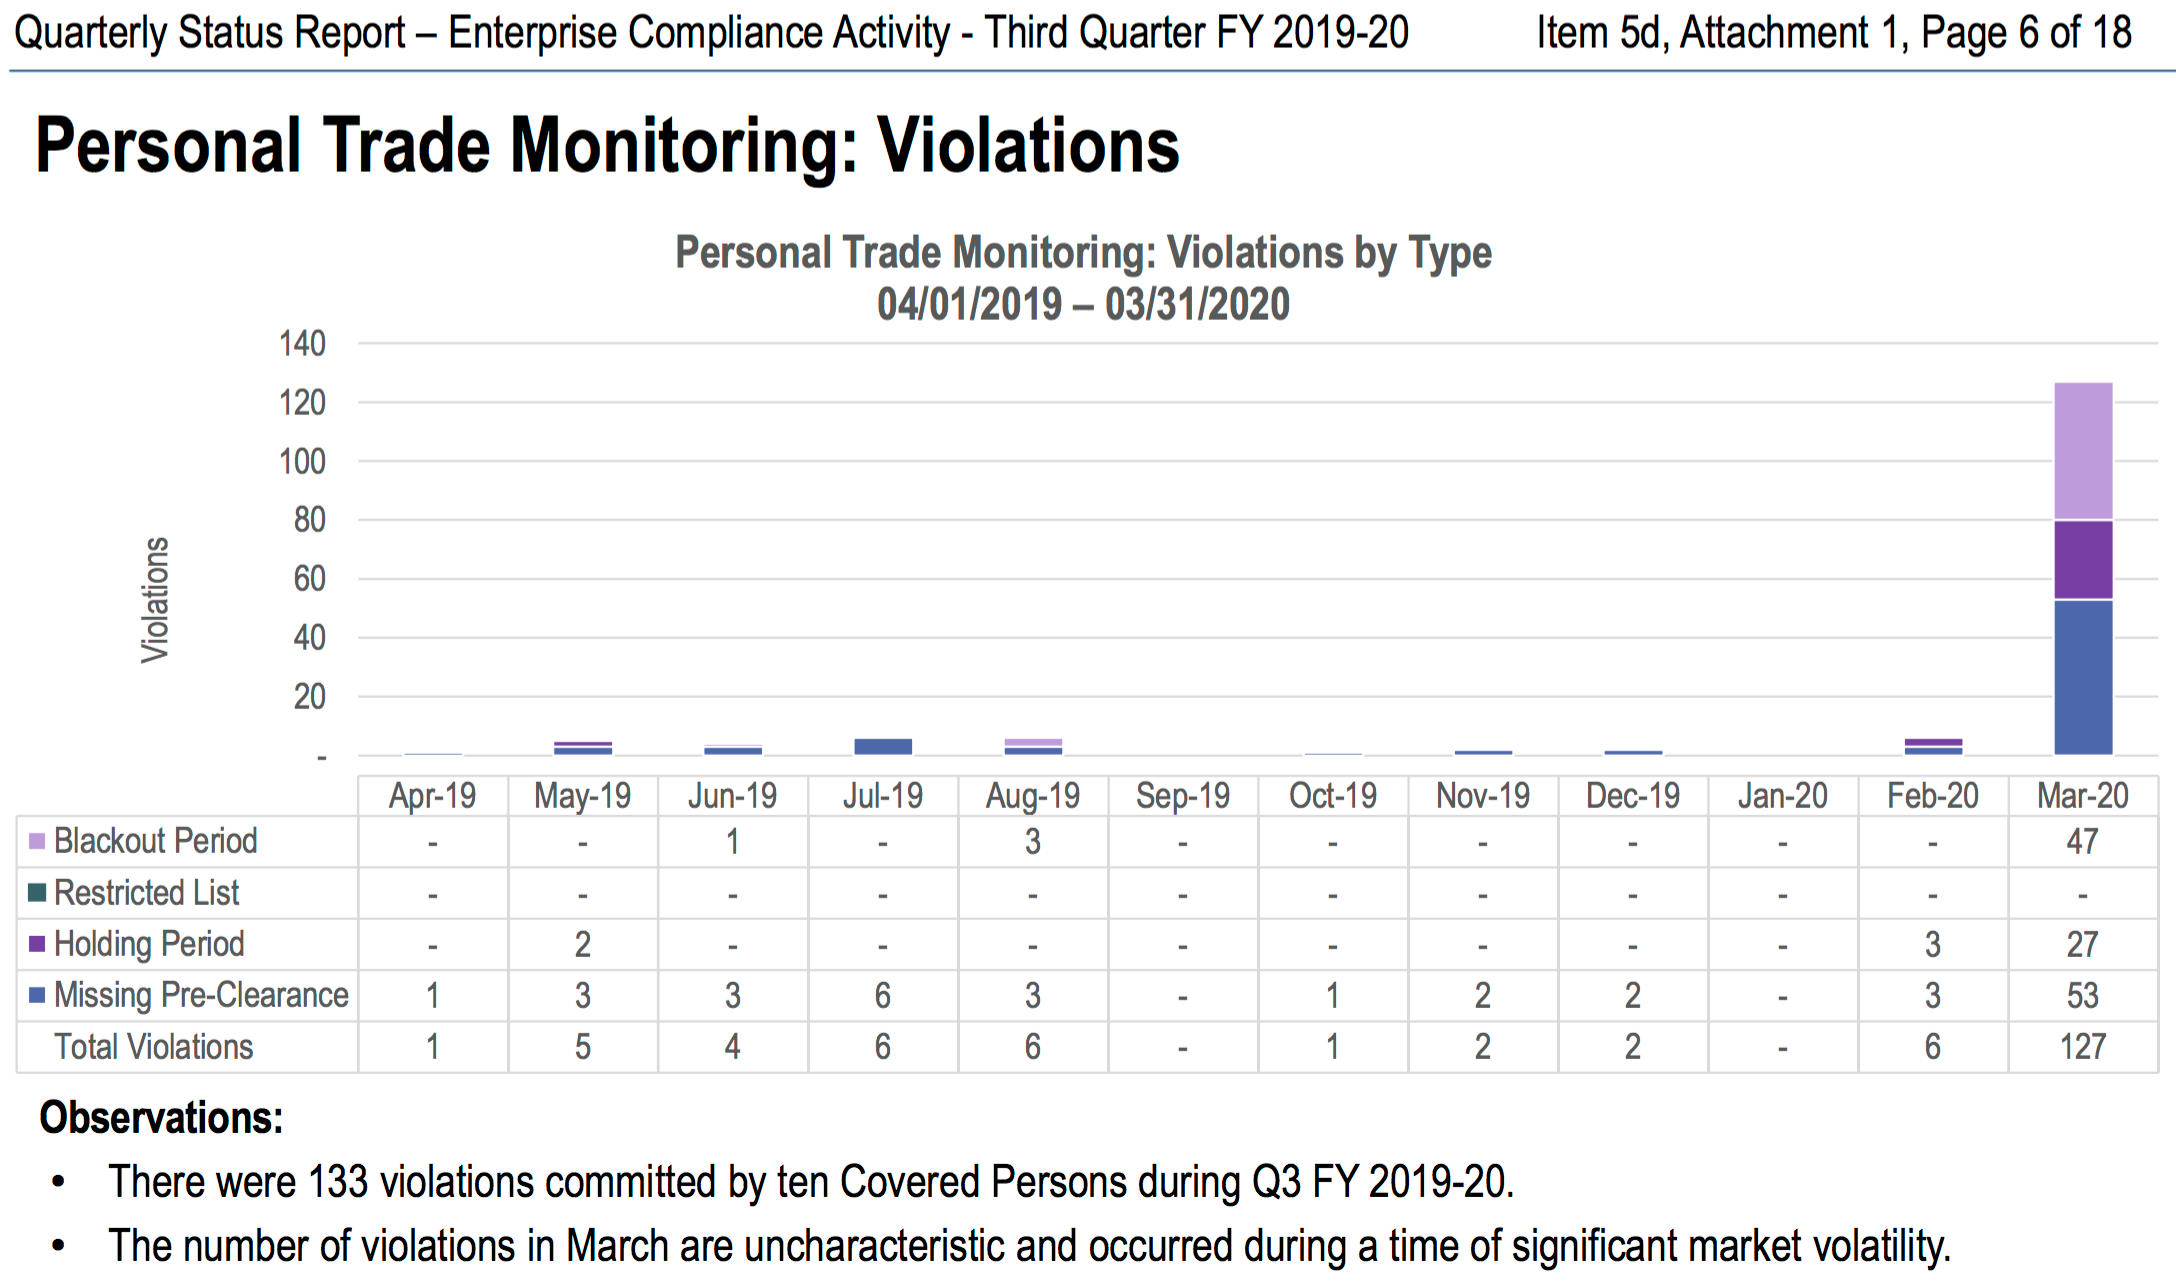 CalPERS Out of Control: Stunningly High Number of Personal Trading Violations, Yet Board Ignored the Misconduct 2